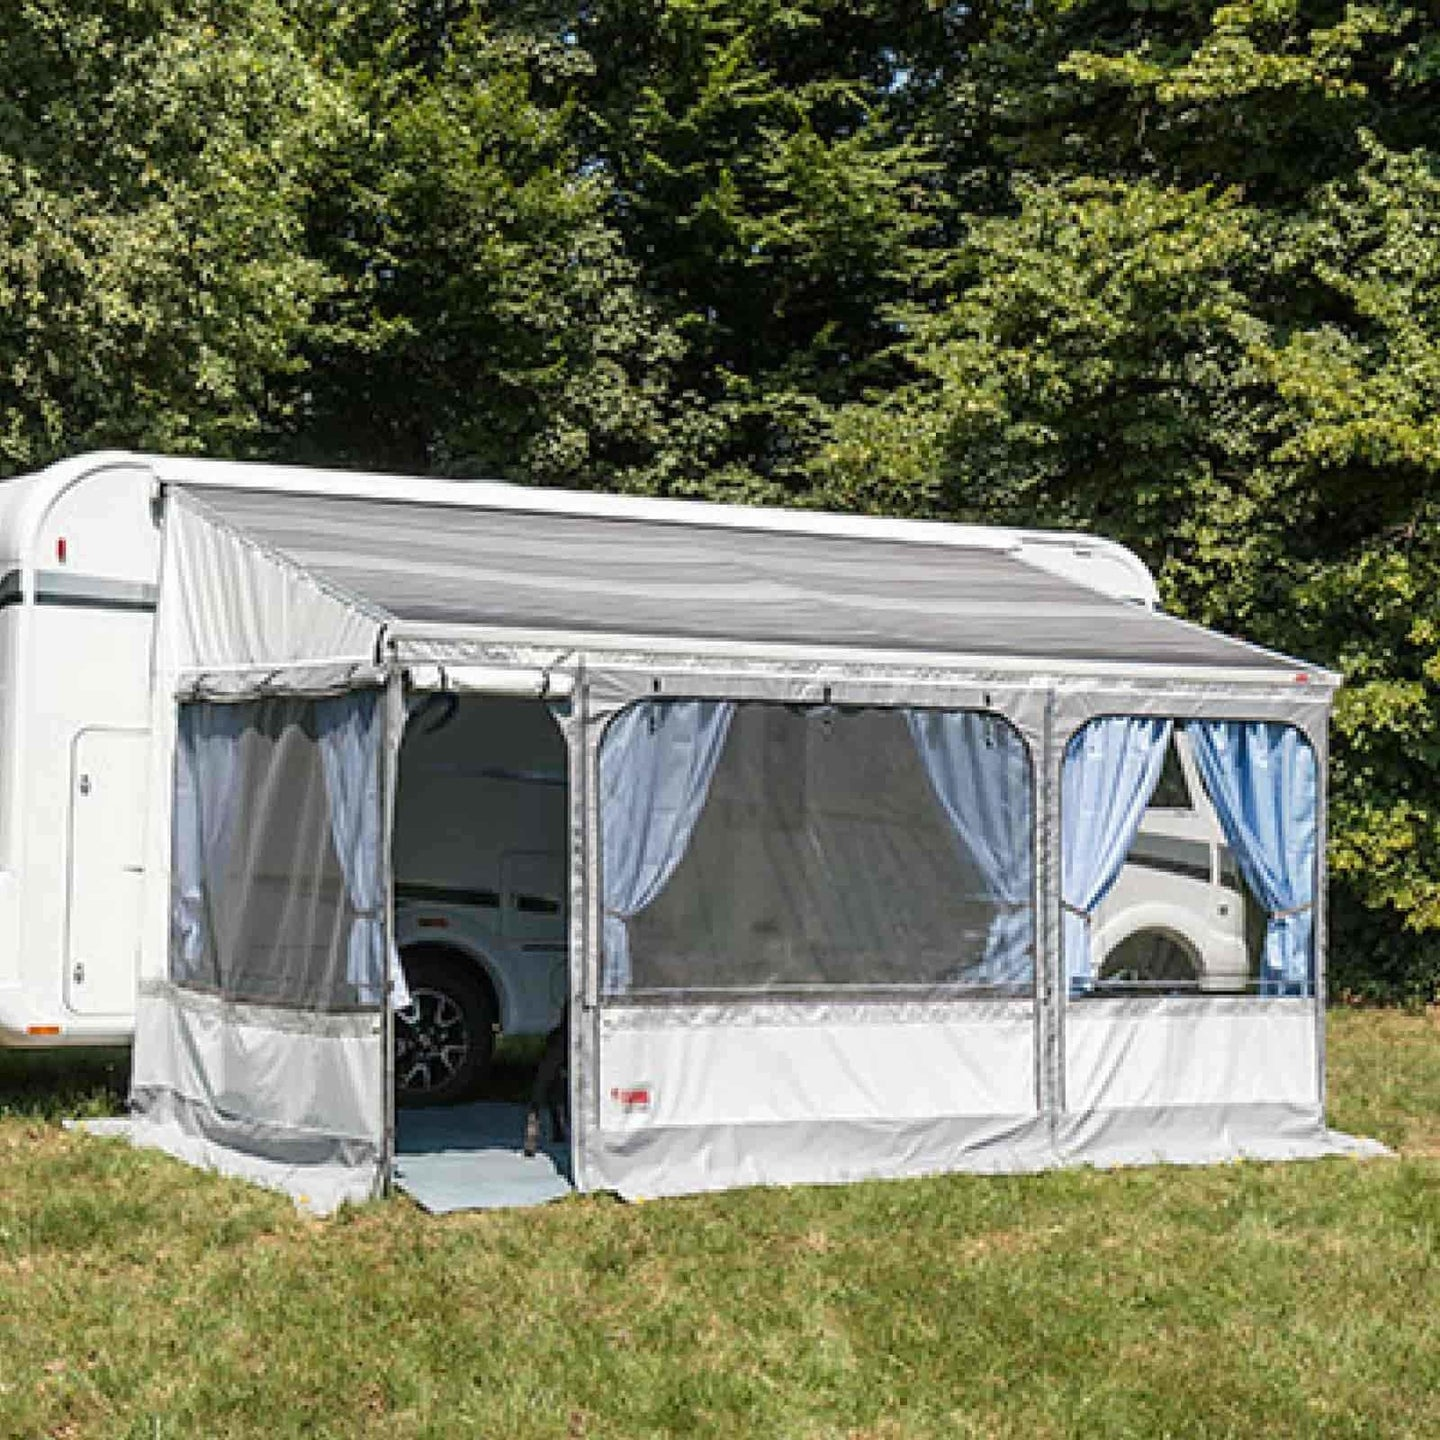 Fiamma F65 Privacy Room made by Fiamma. A Tent sold by Quality Caravan Awnings